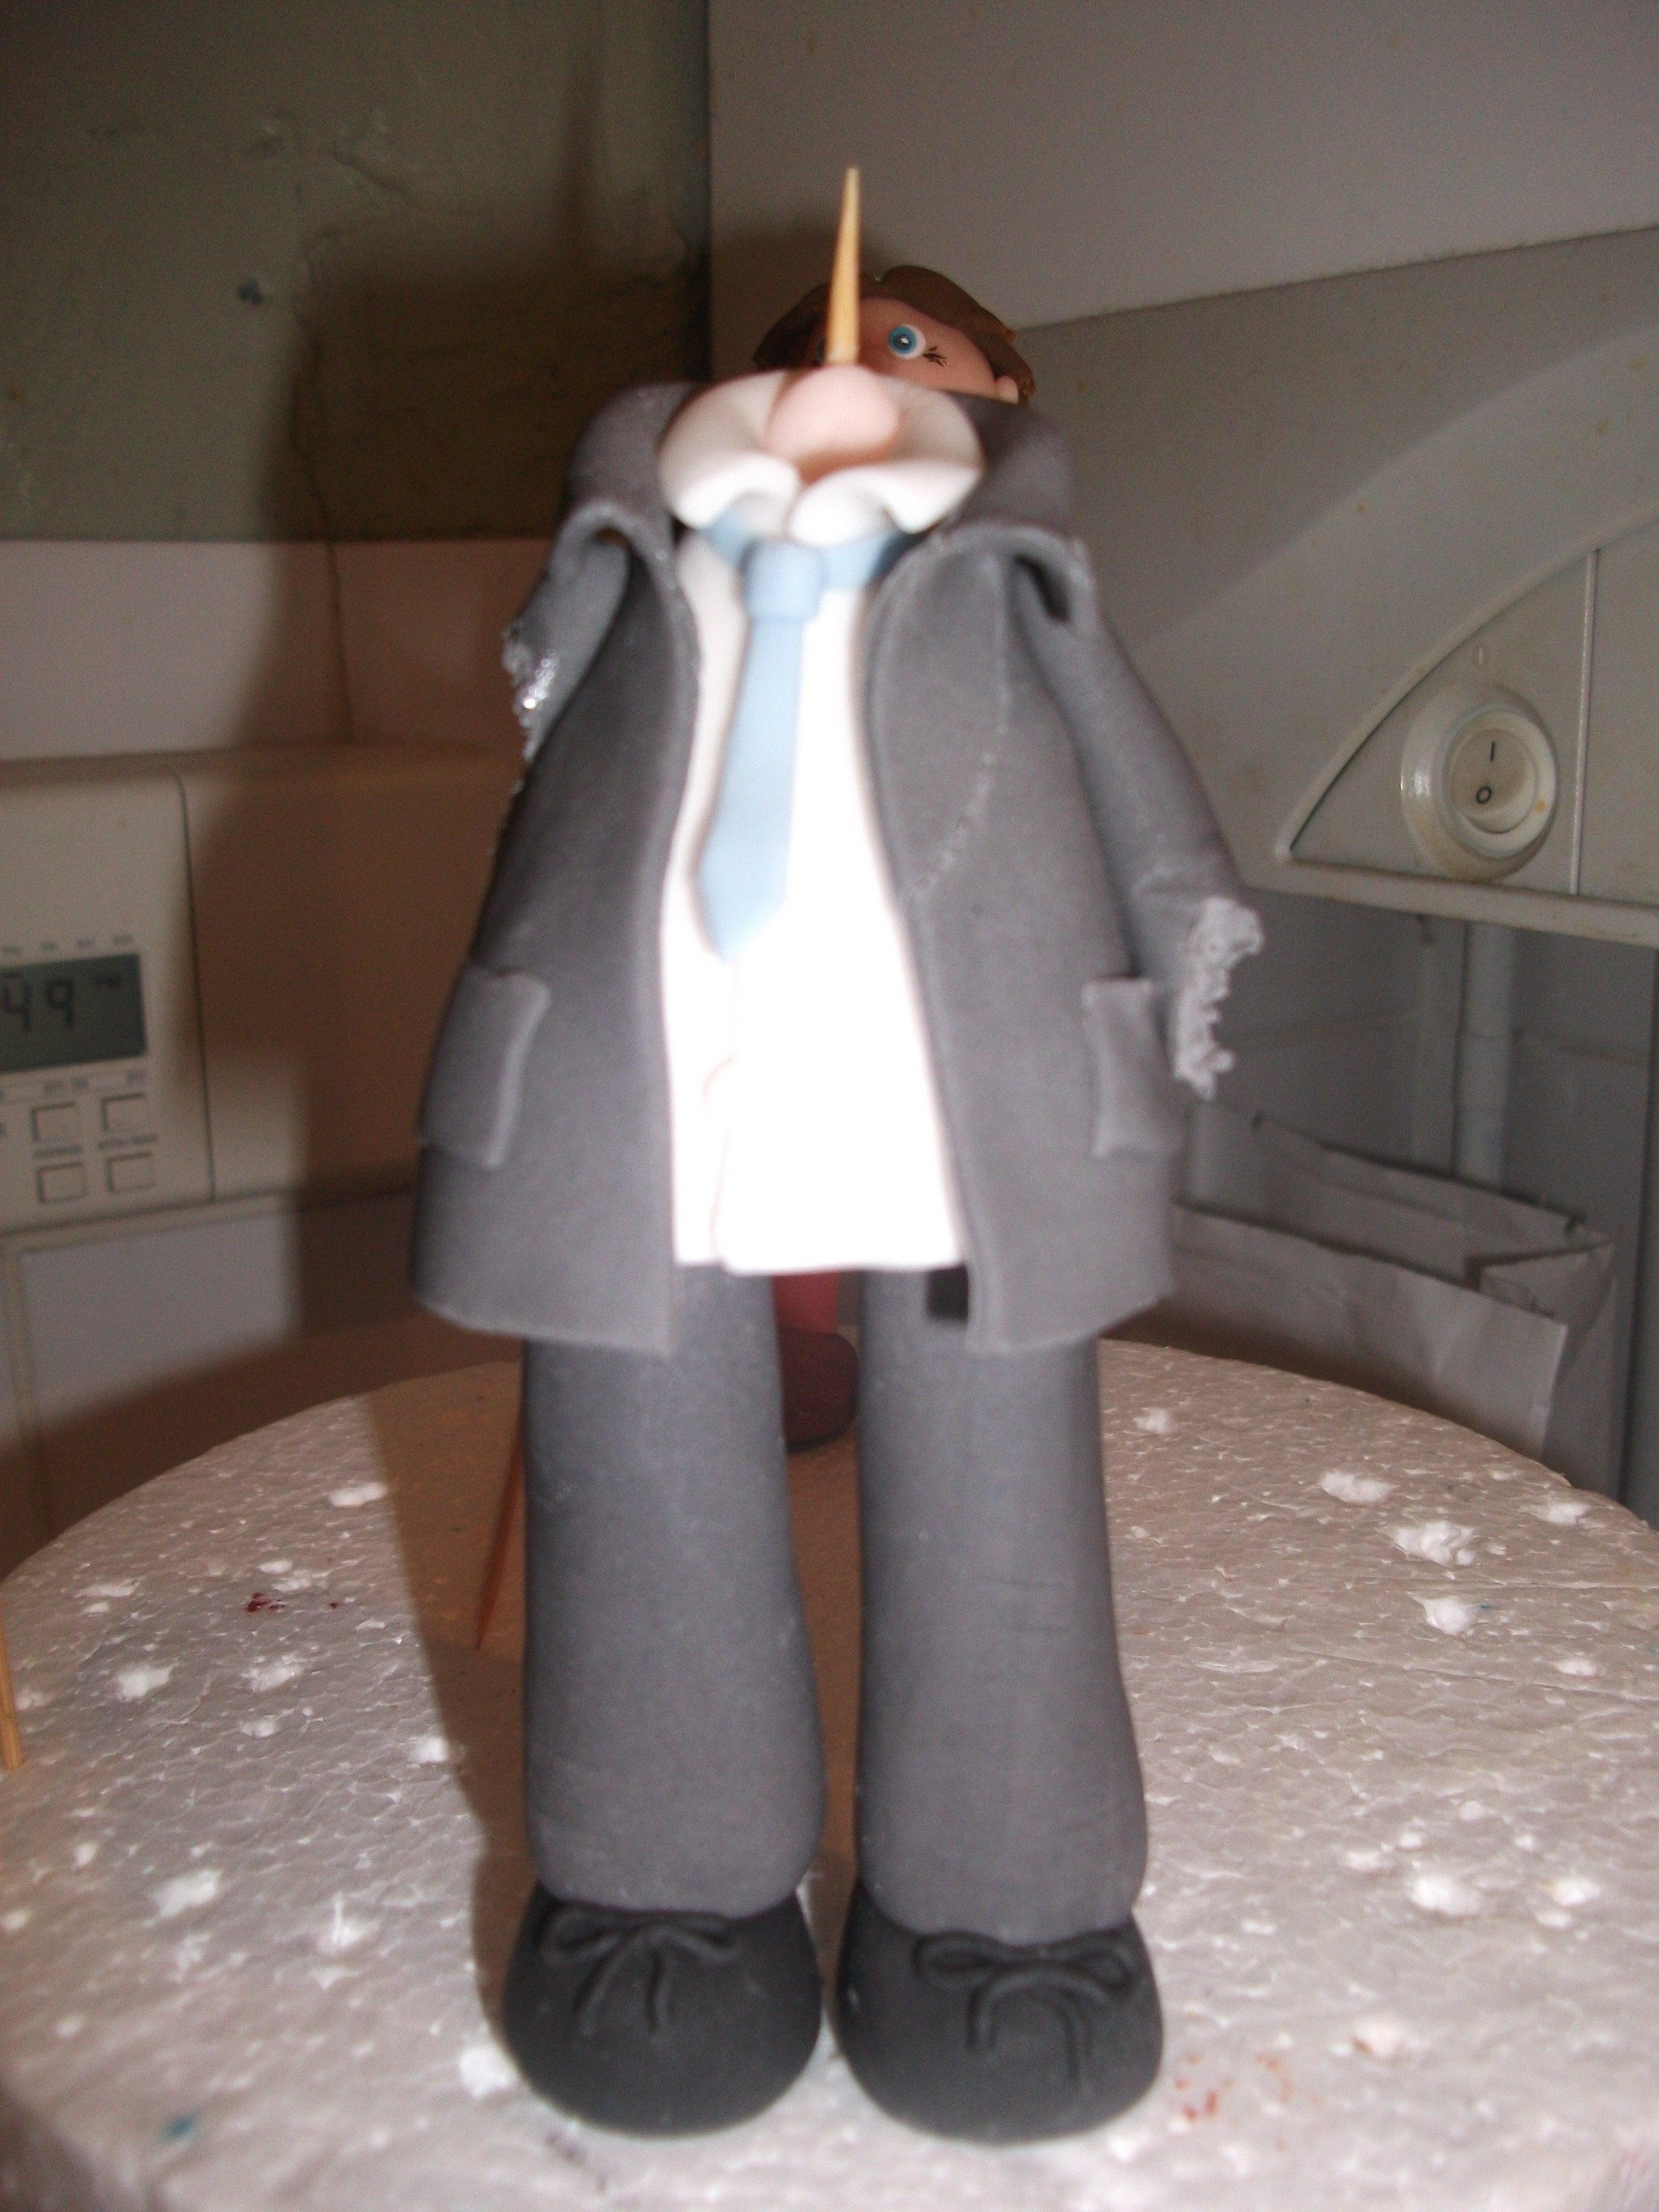 I was making this figure for my latest cake only I didnt hide it well enough from my little grandson who has a taste for sugar!! I went upstairs to the spare bedroom to find him eating the arms, aaarrghhhgh!! Couldnt stay mad for long though when he...